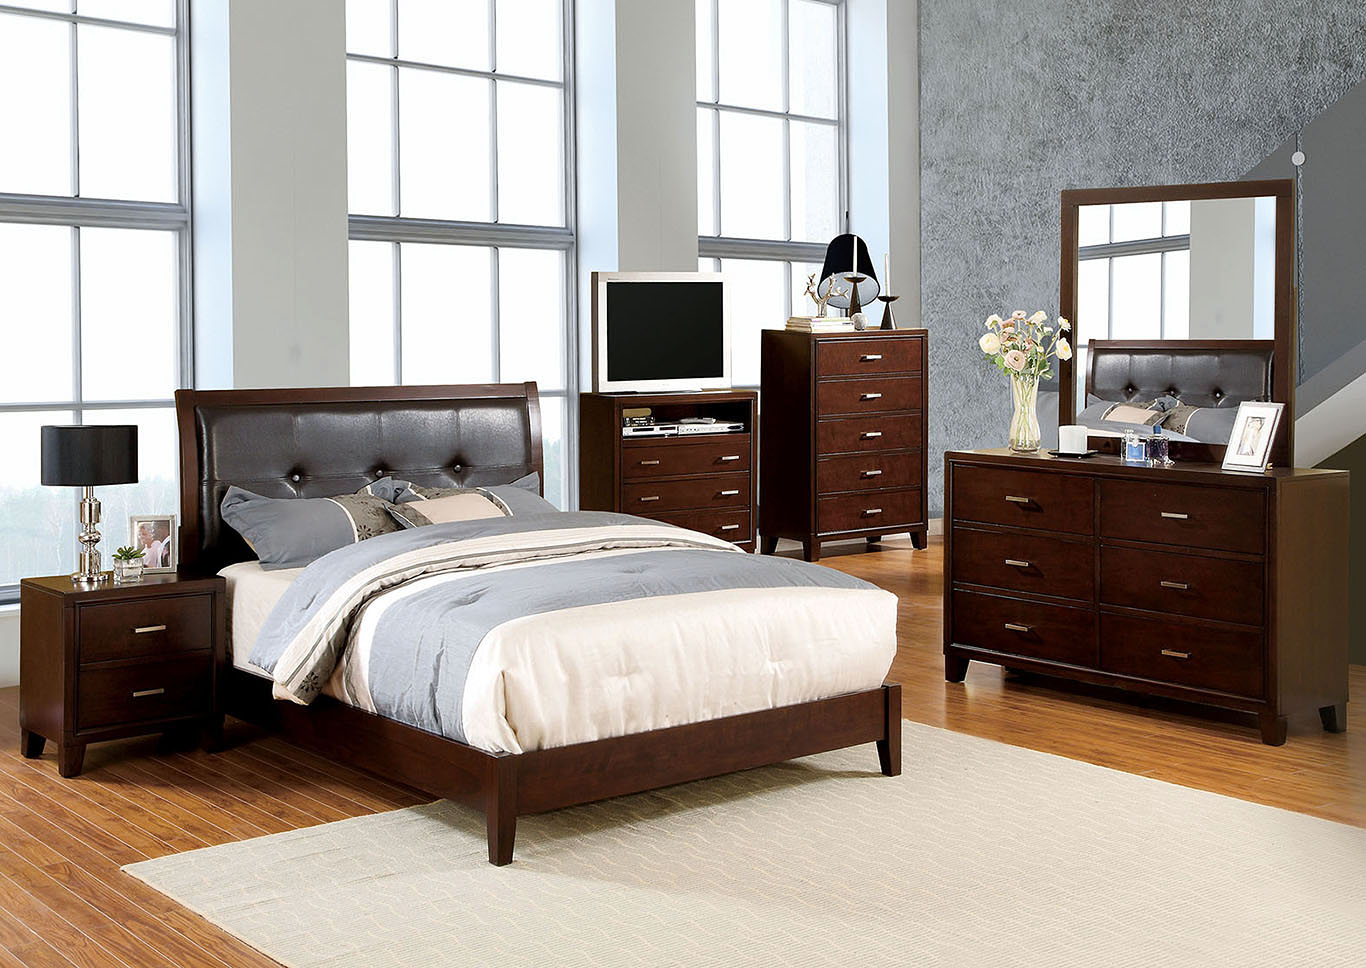 Enrico I Brown Cherry Full Platform Bed,Furniture of America